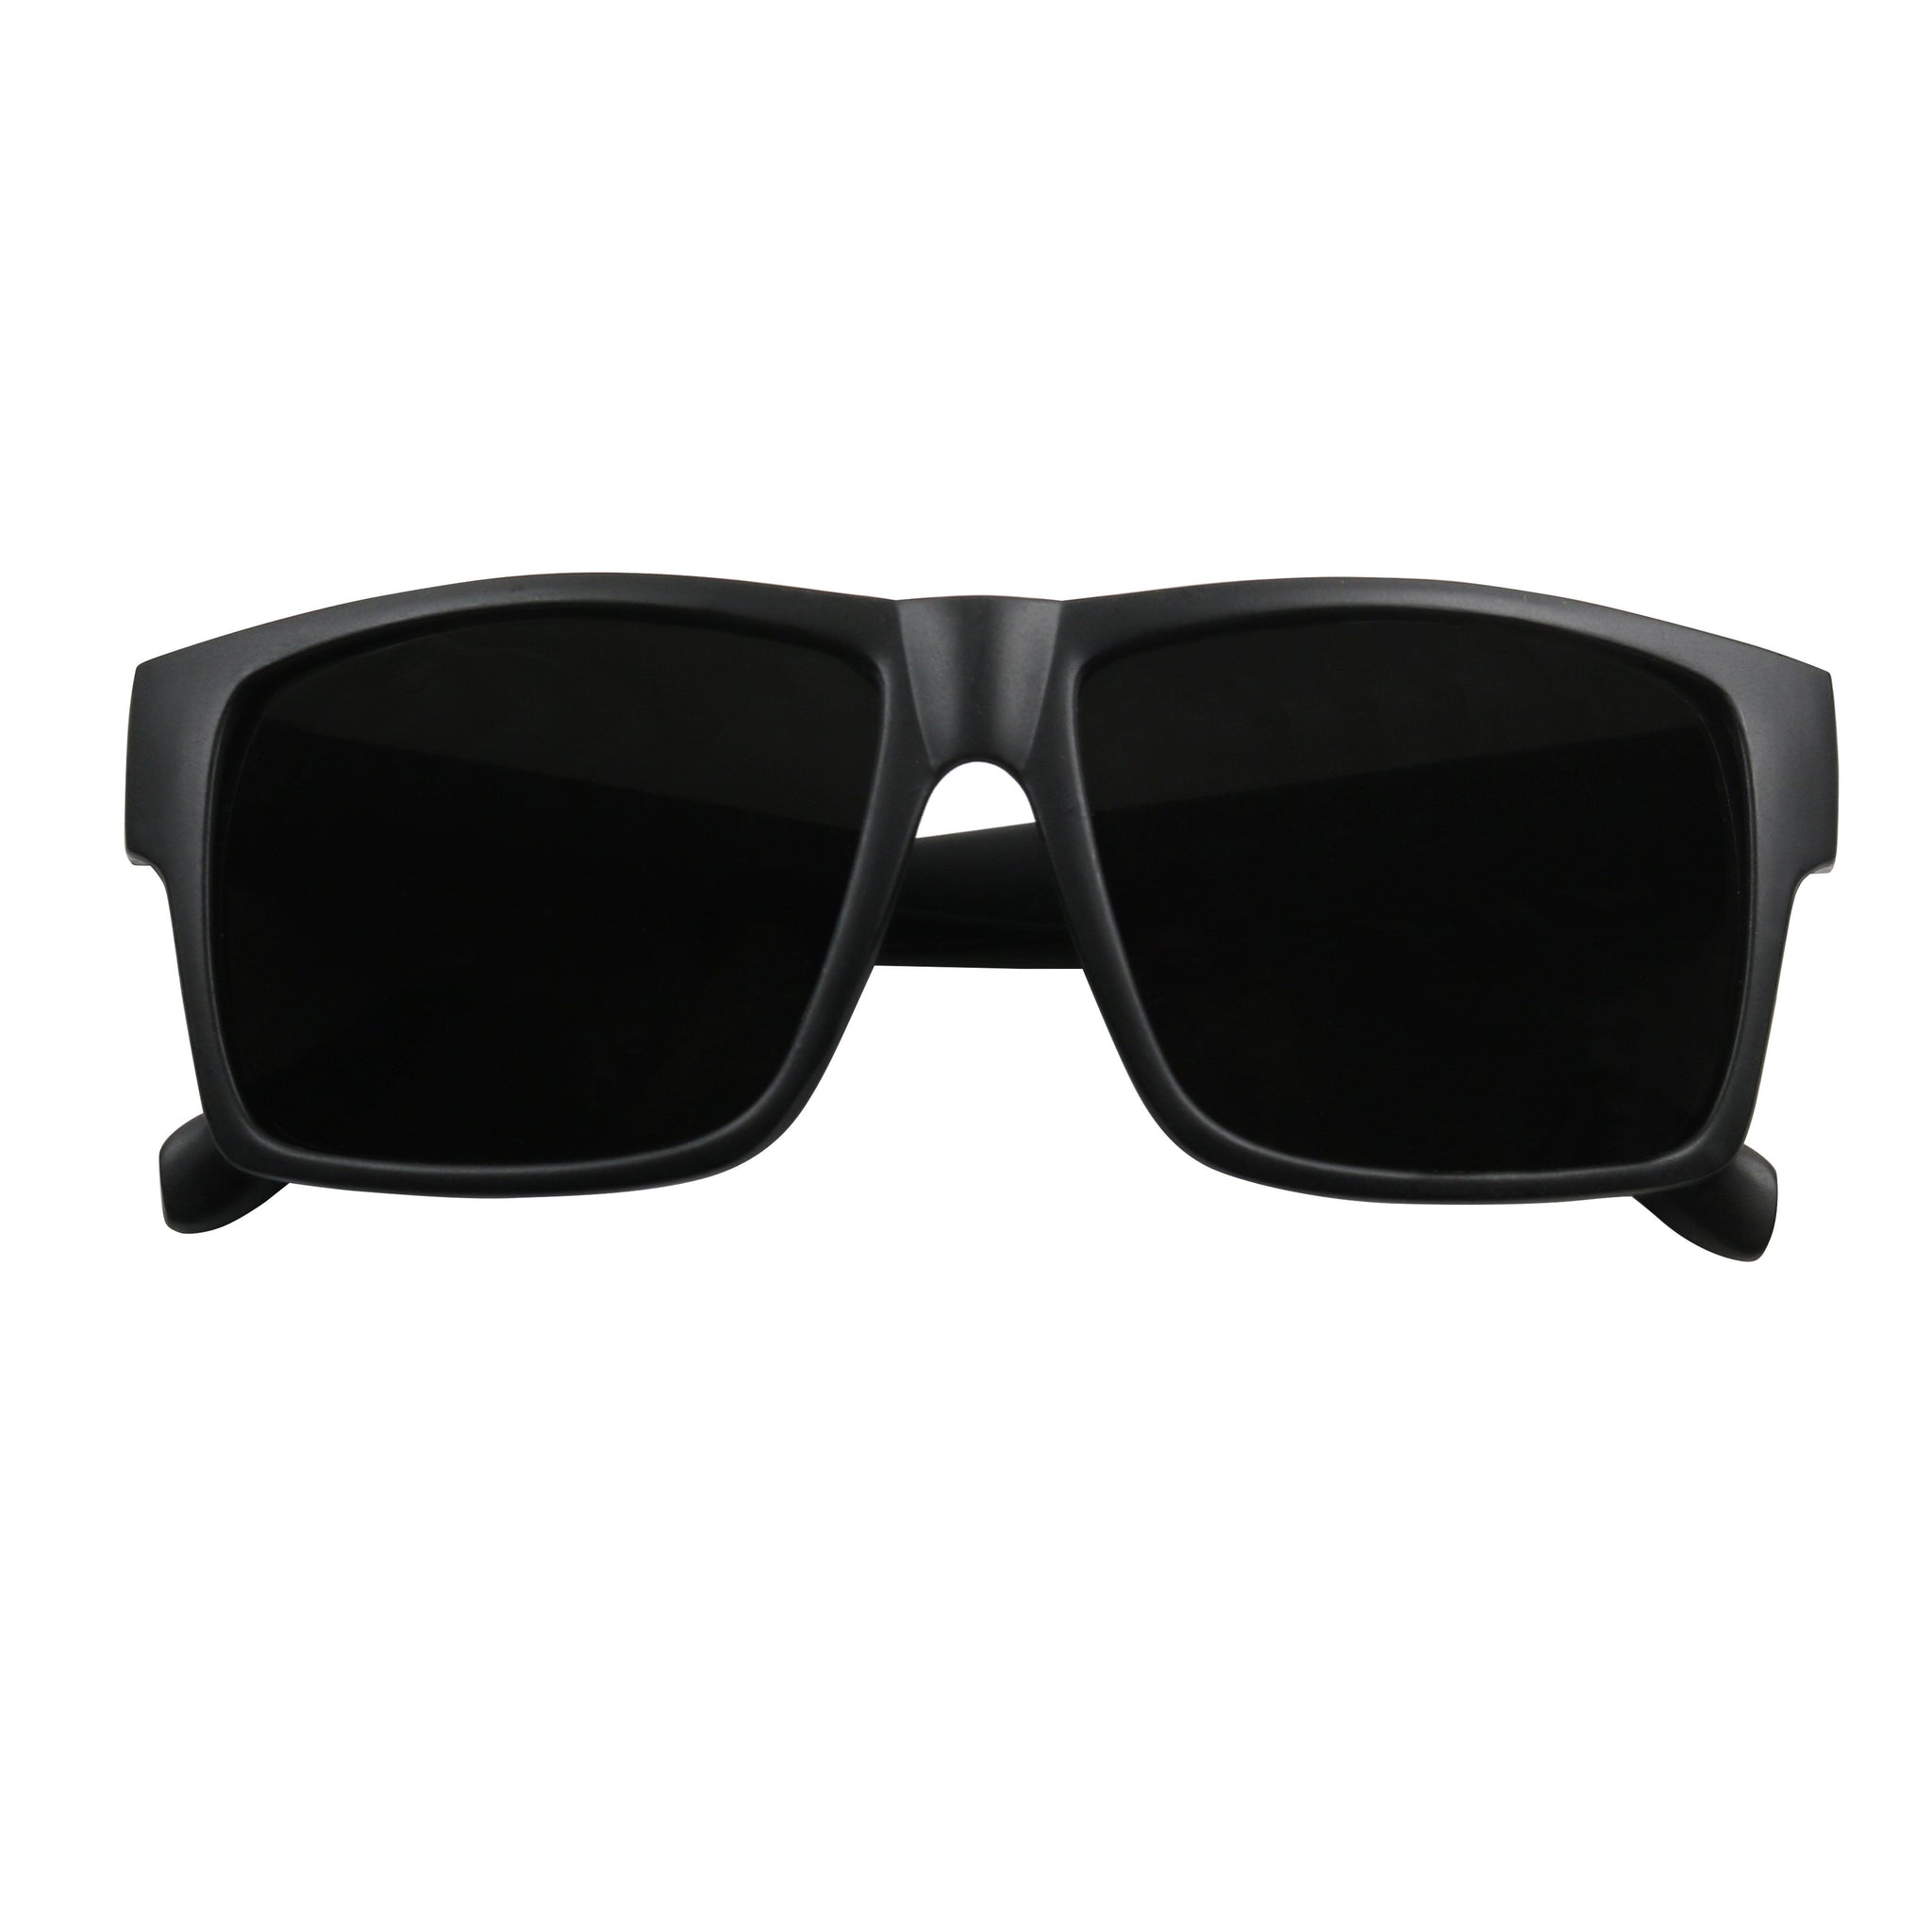 GUY Super Dark Retro Frame Sunglasses - ShadyVEU